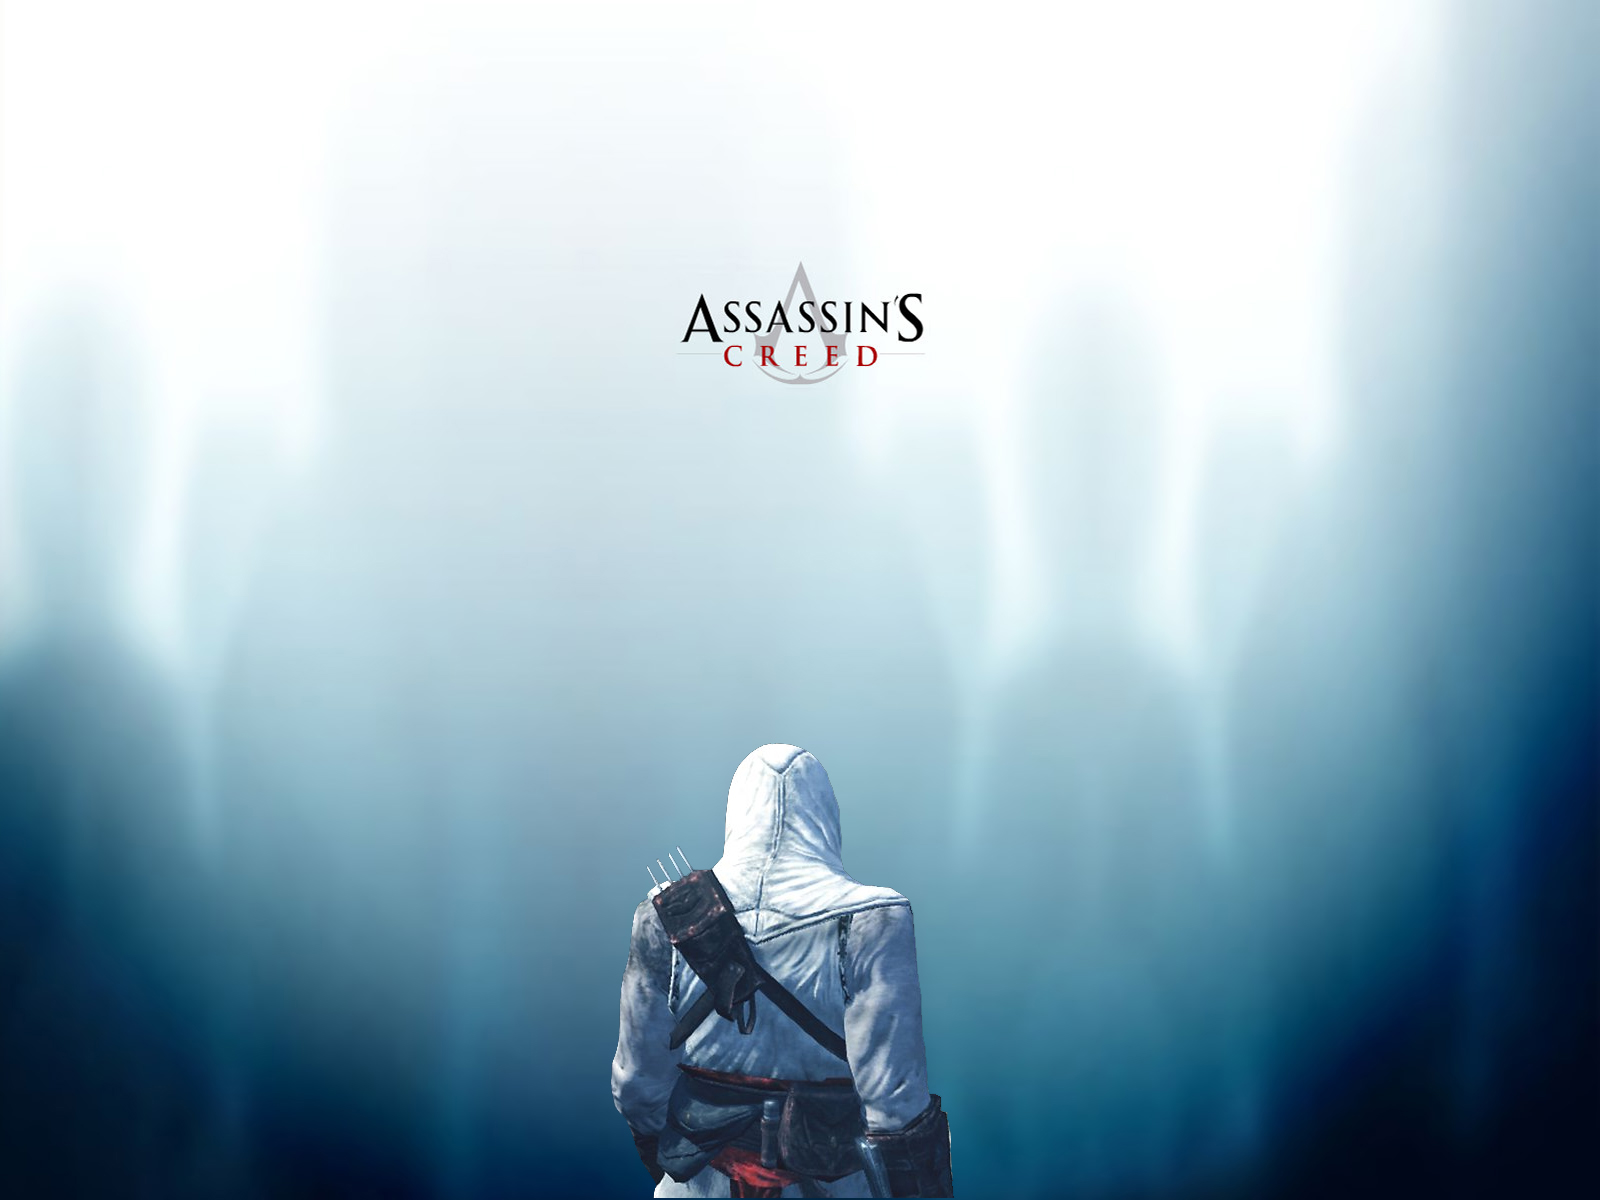 Assassins Creed 2 HD Wallpaper